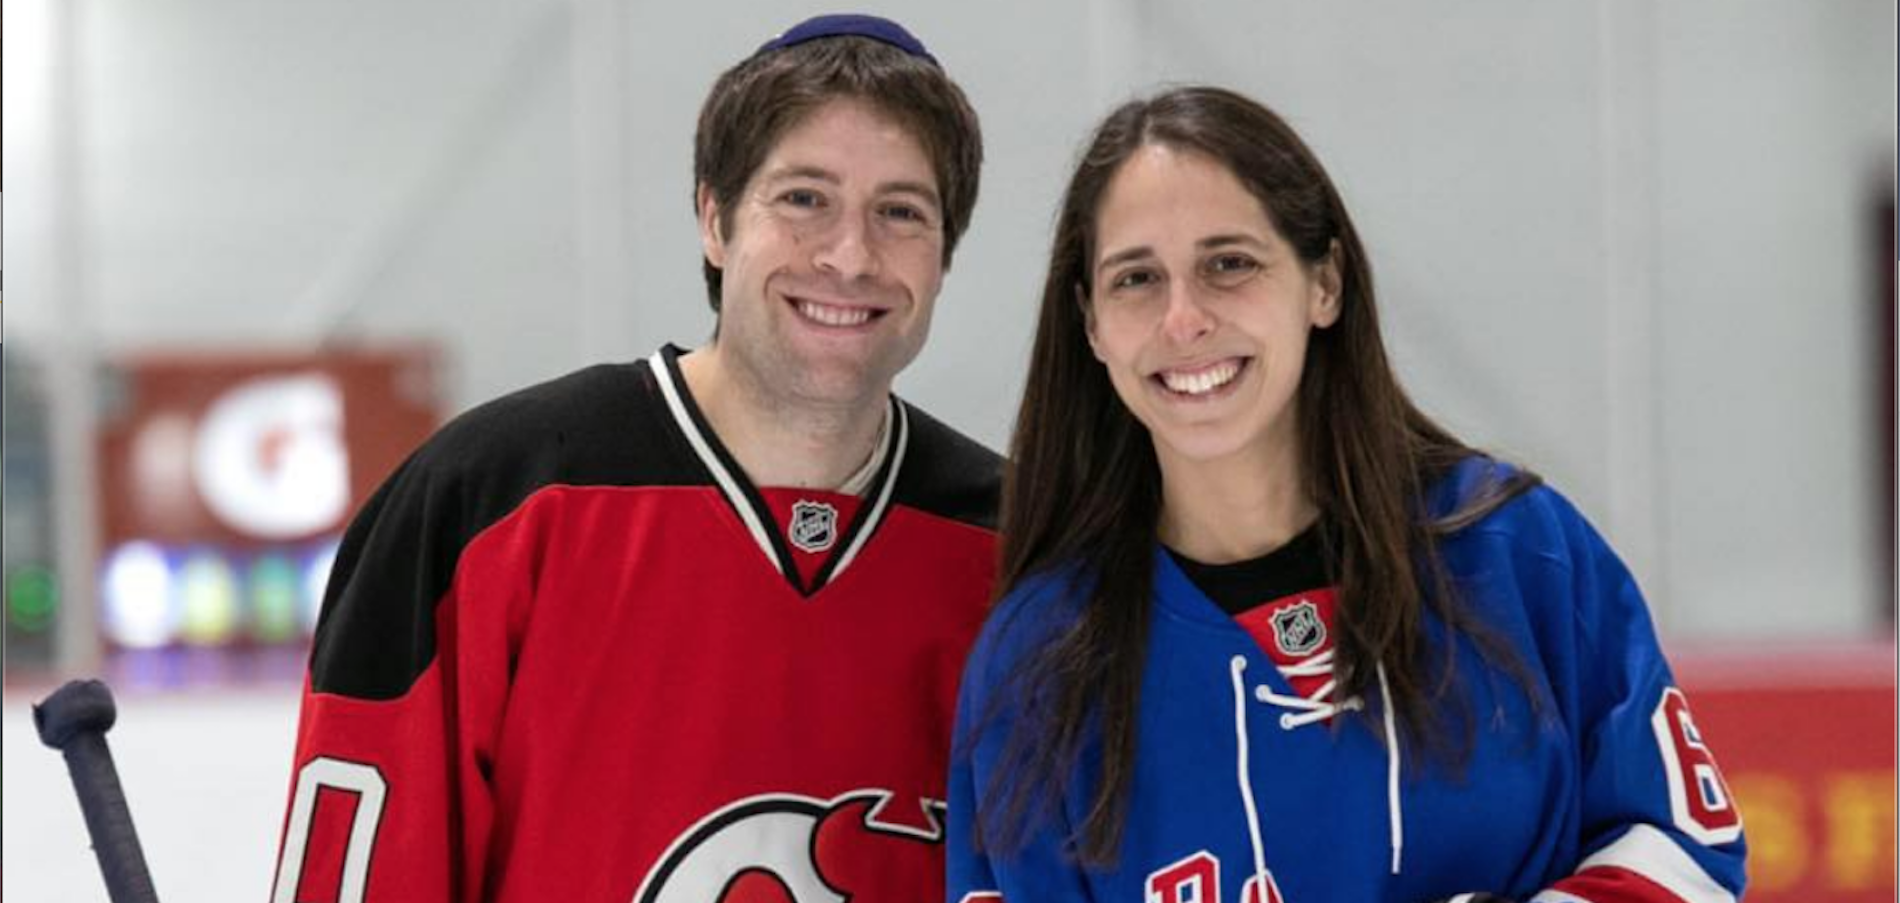 Aliza Hiller - The Orthodox Jewish Female Ice Hockey Player